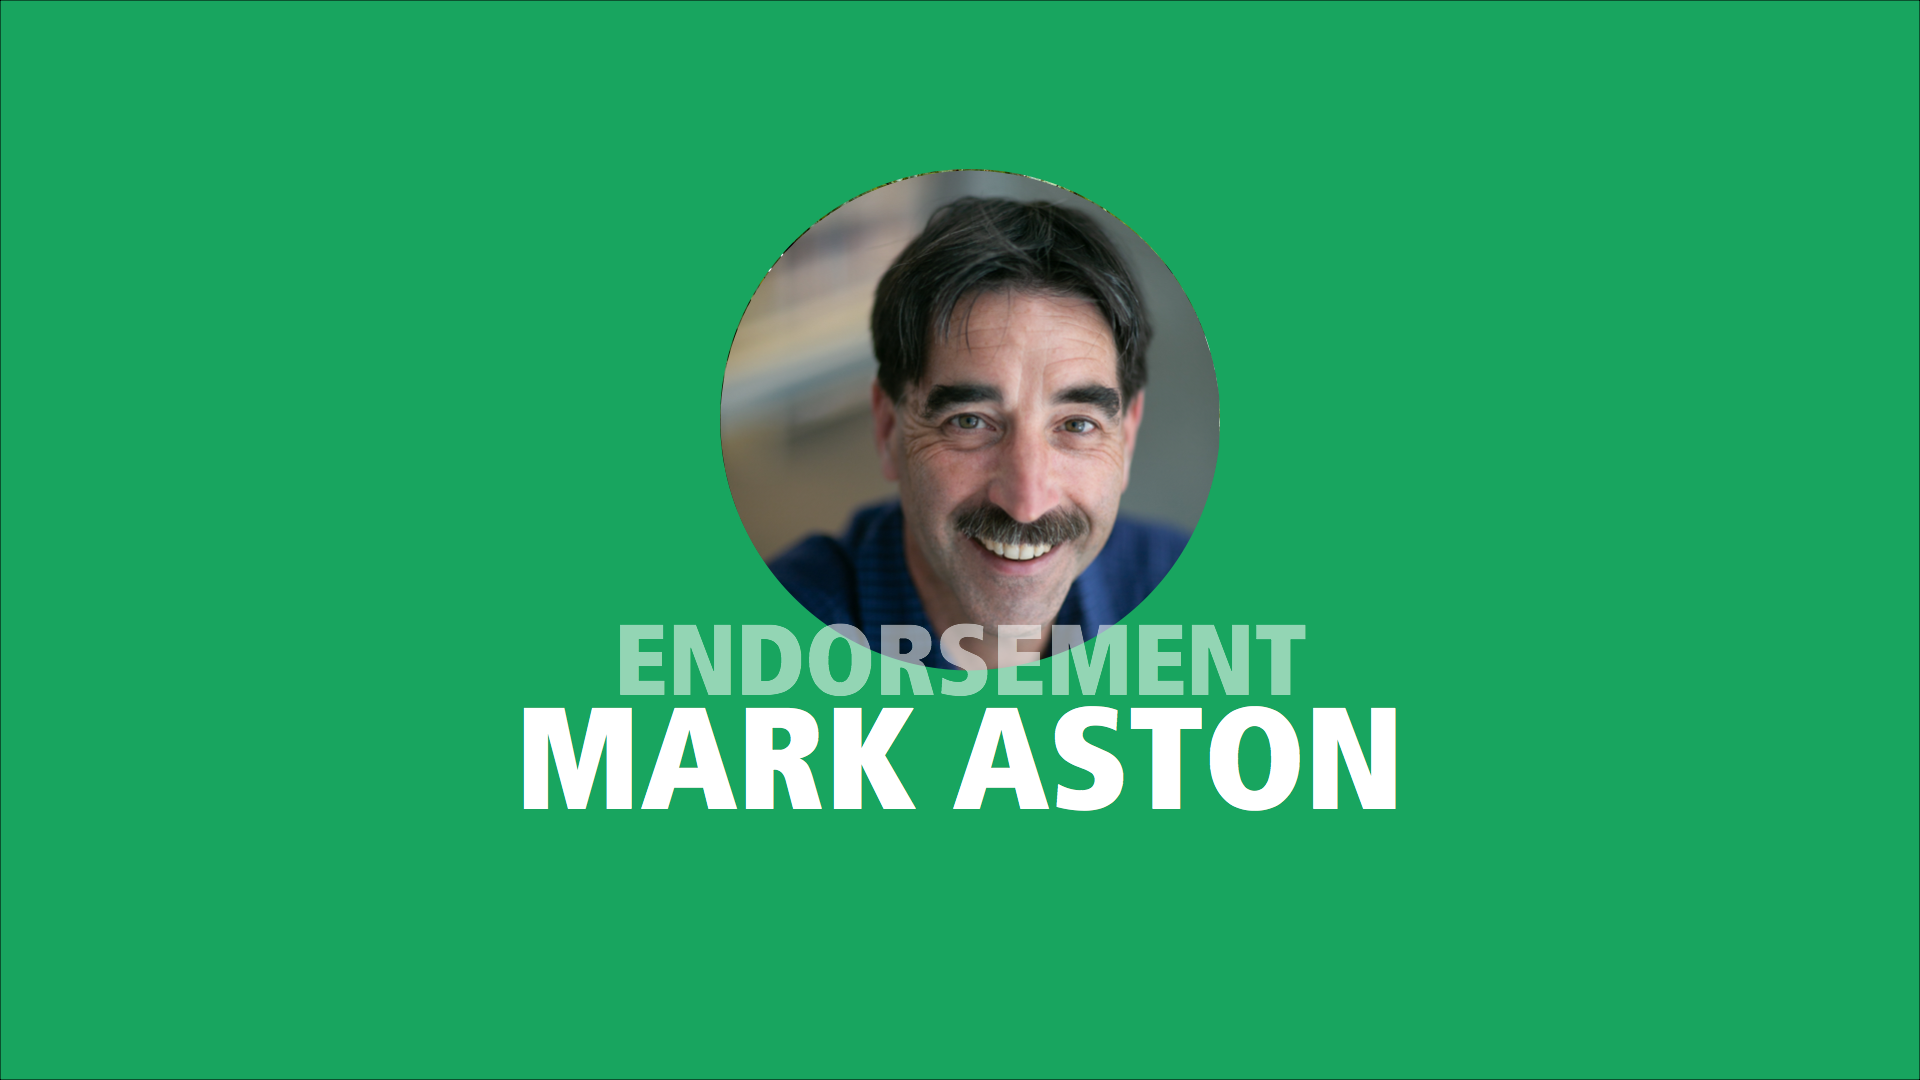 Mark Aston endorses Adam Olsen